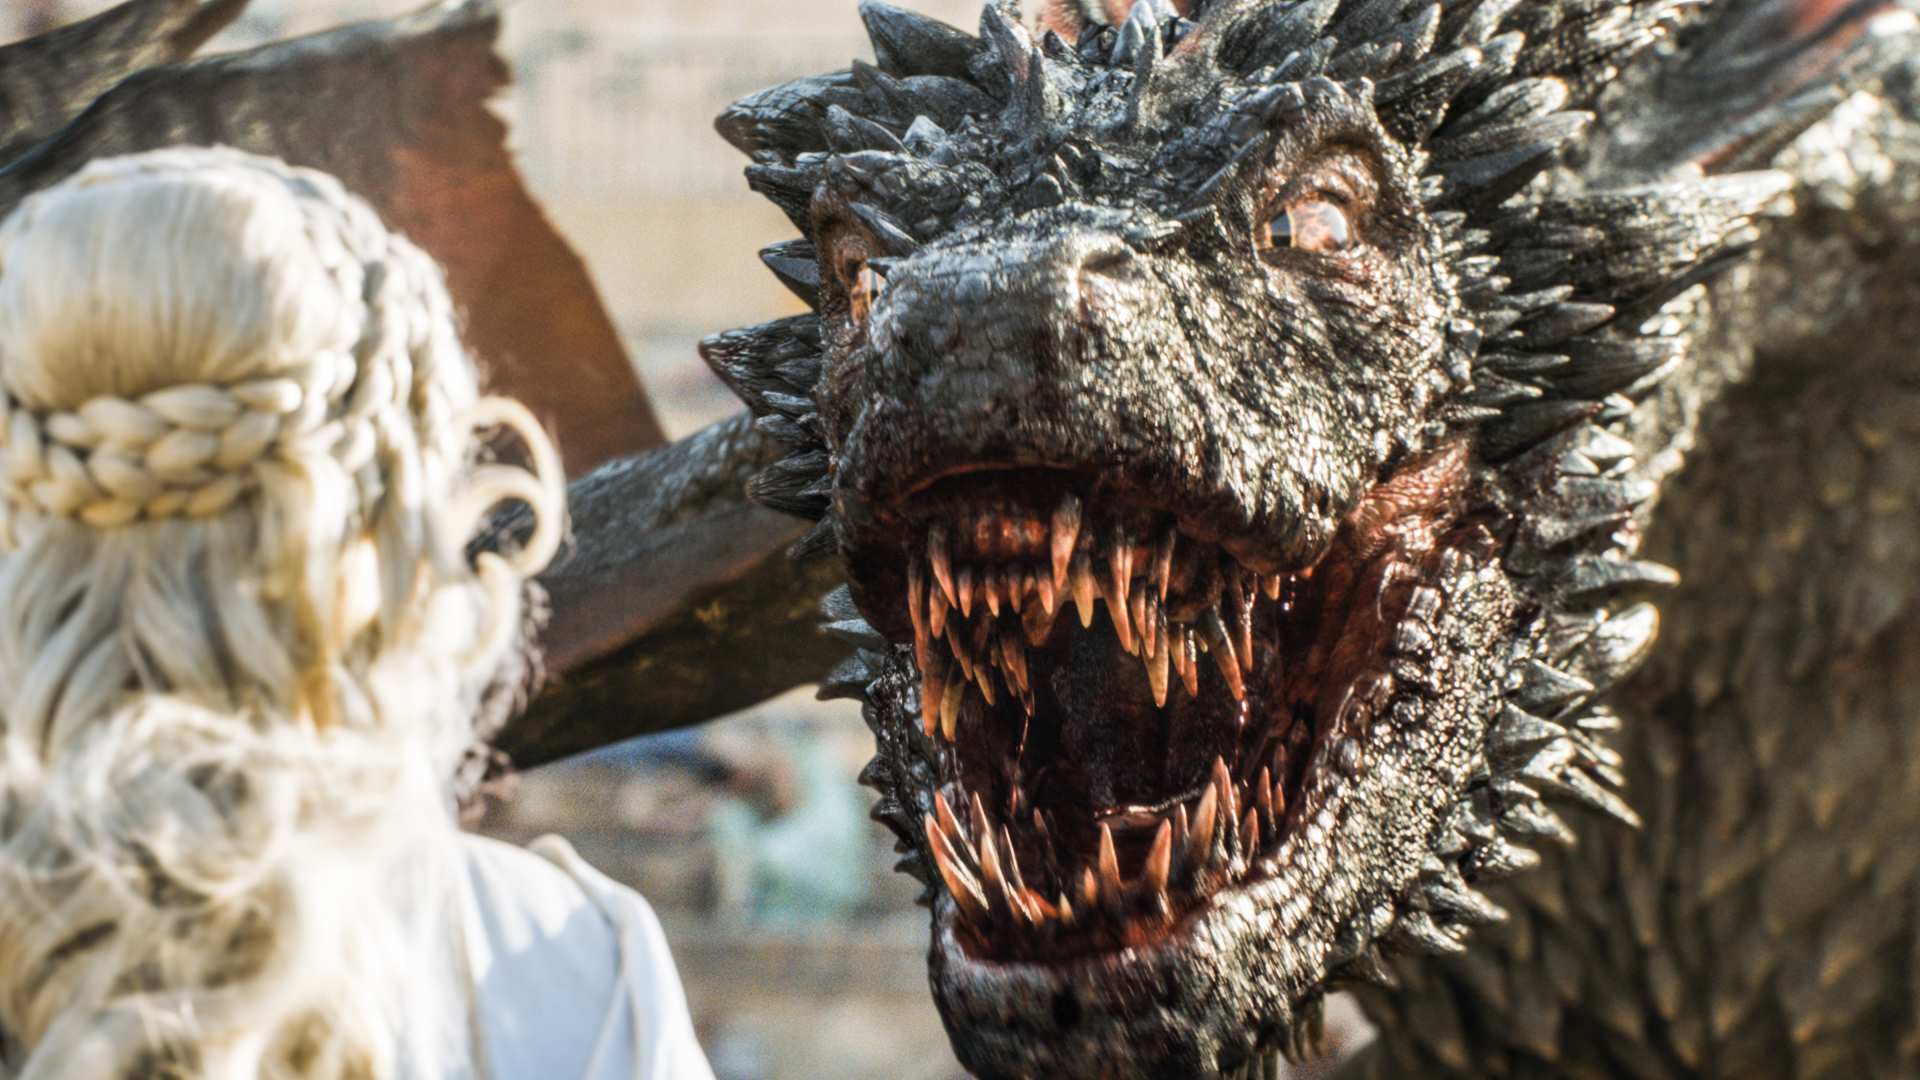 Game of Thrones' dragons.